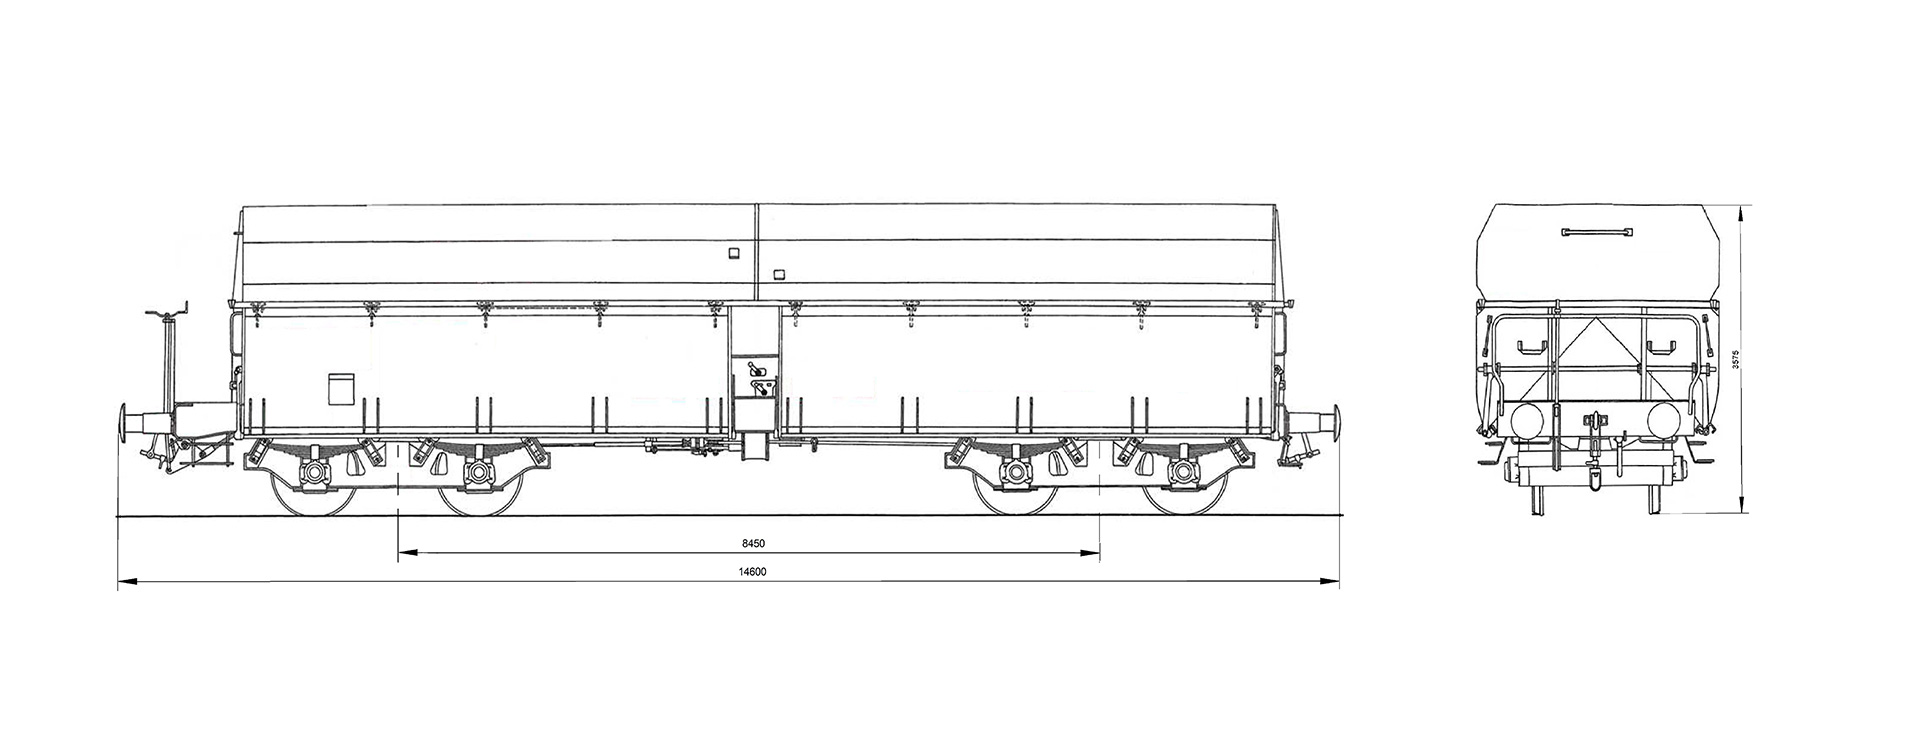 hight resolution of the railcar can be unloaded from each side individually or from both sides at once by manipulating the unloading mechanism